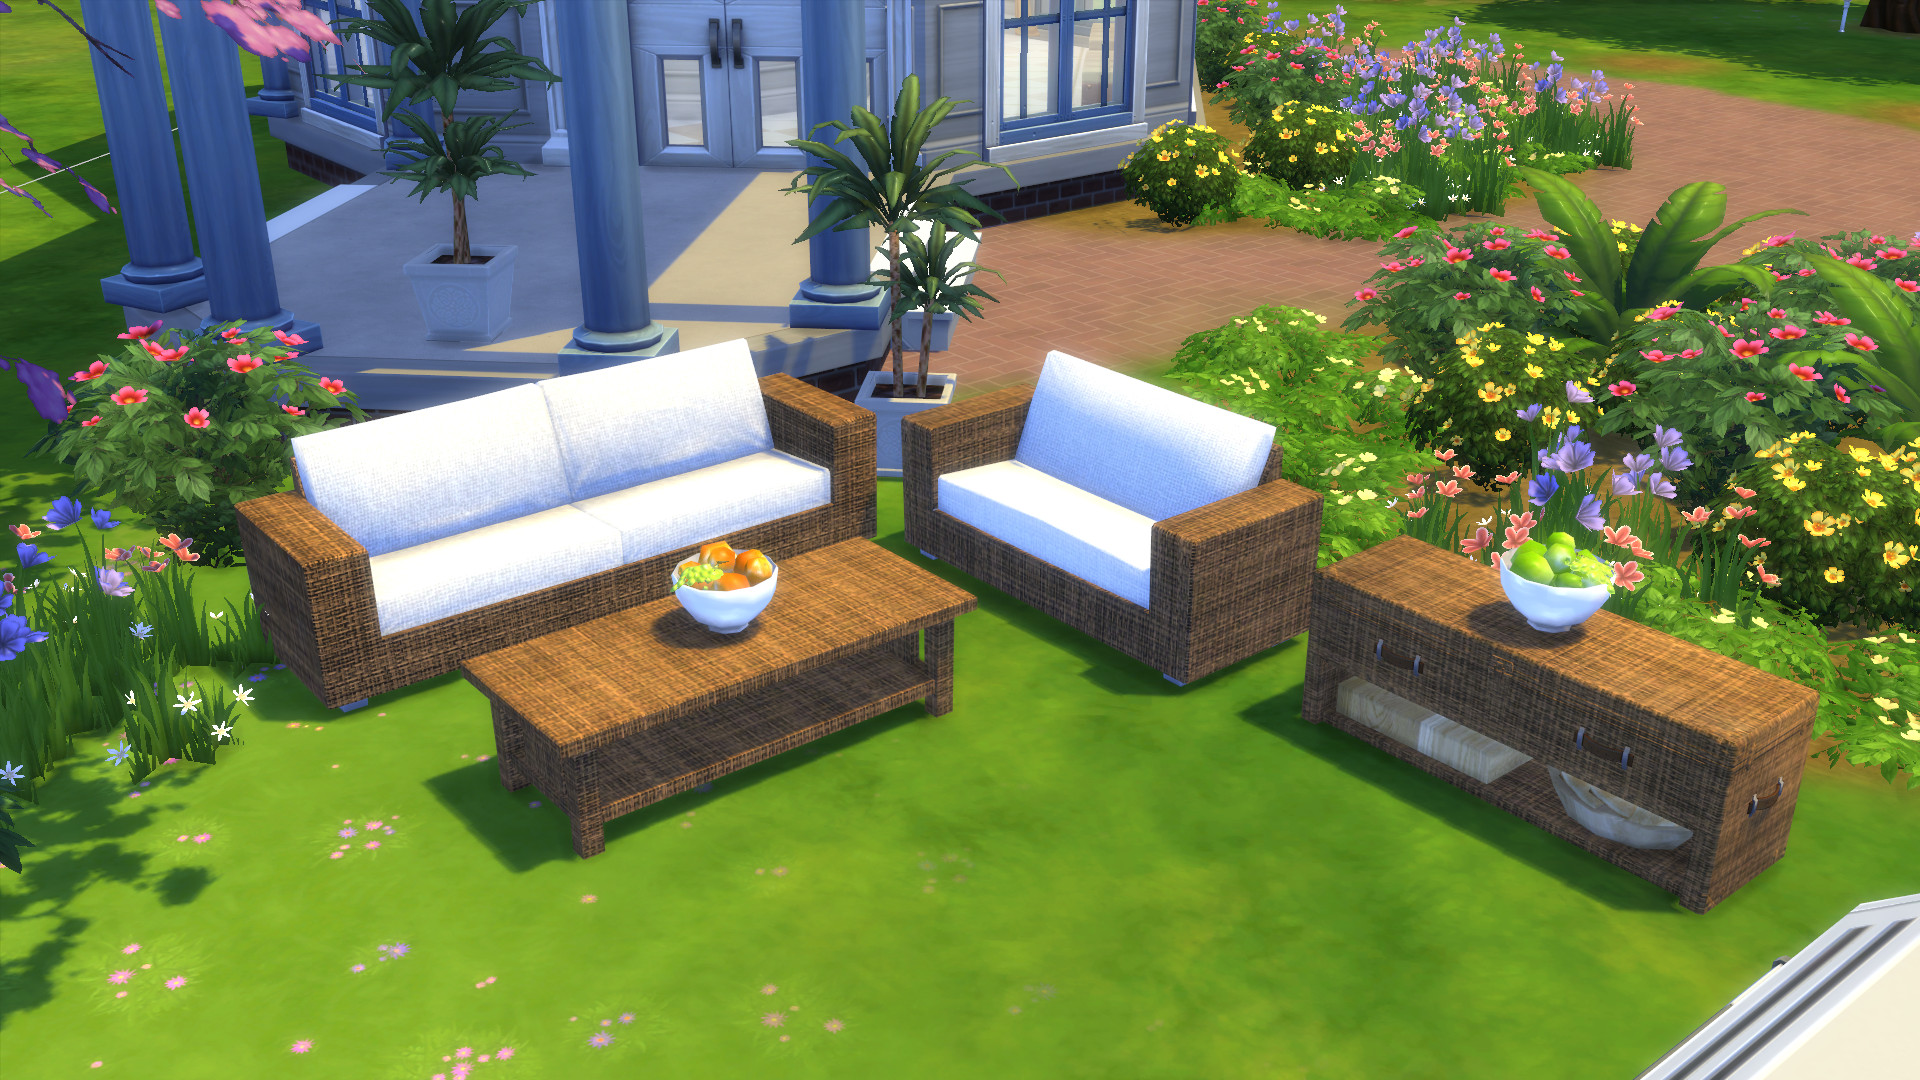 Mod The Sims - Garden Furnitures - Set